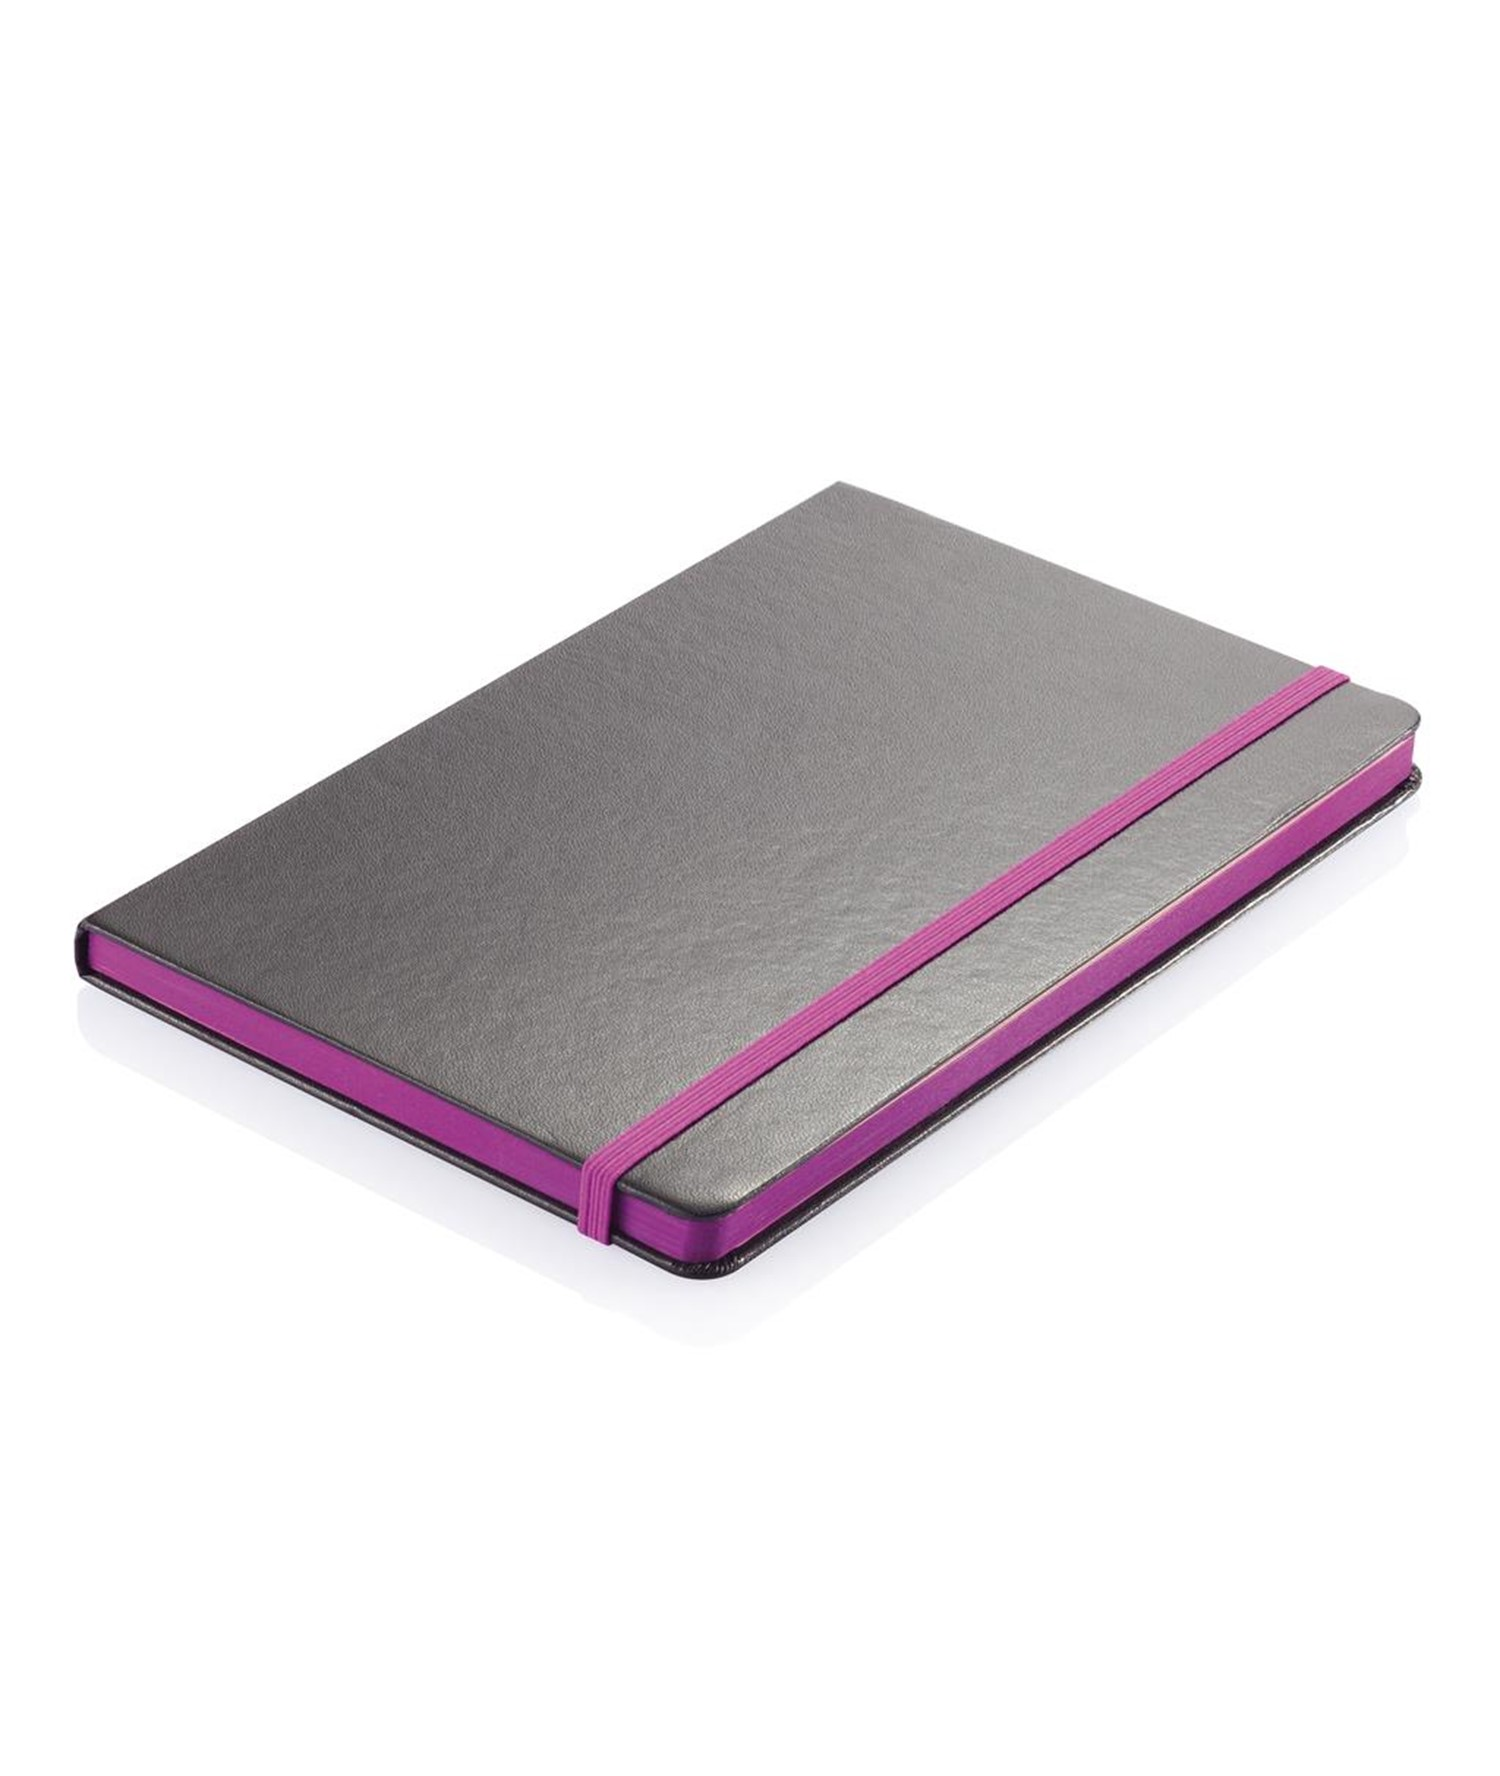 A5 NOTEBOOK WITH COLORED SIDE